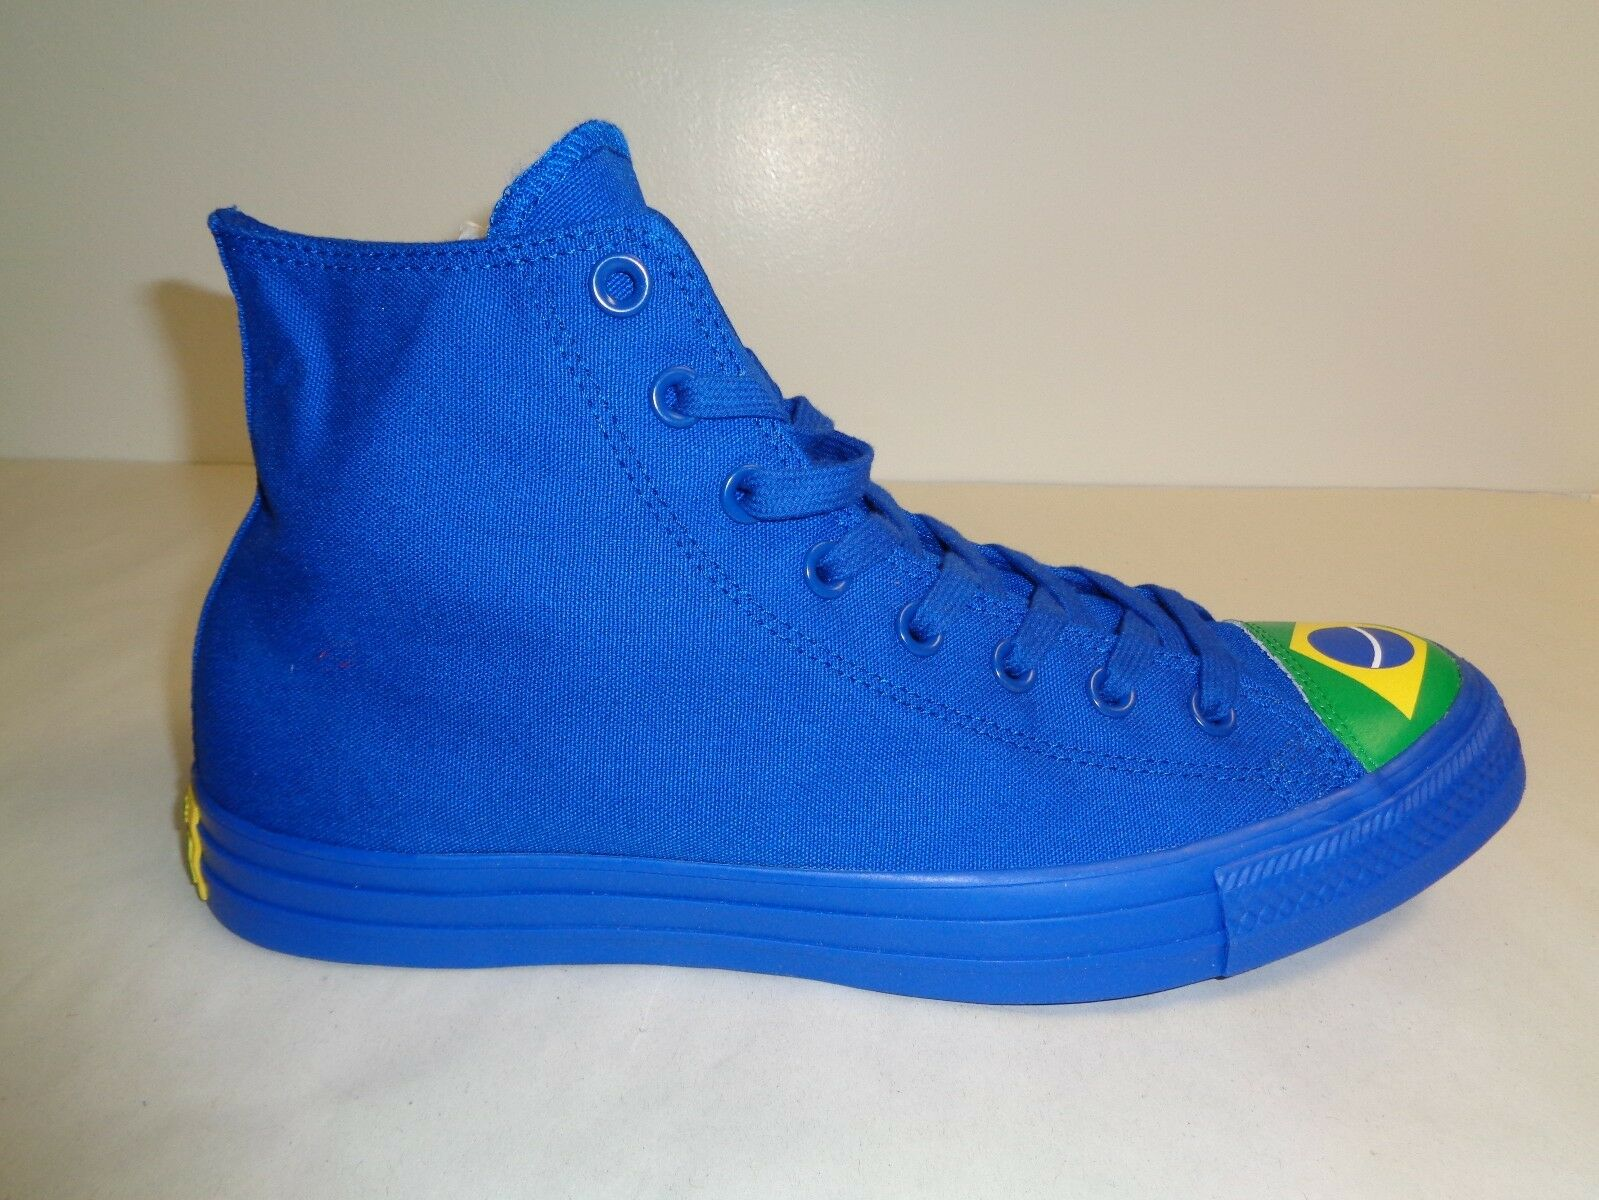 8332ff276a43 Converse Size 11 Mens CTAS HI Blue Green Green Green Brazil Flag Sneakers  New Unisex Shoes cbfc9a